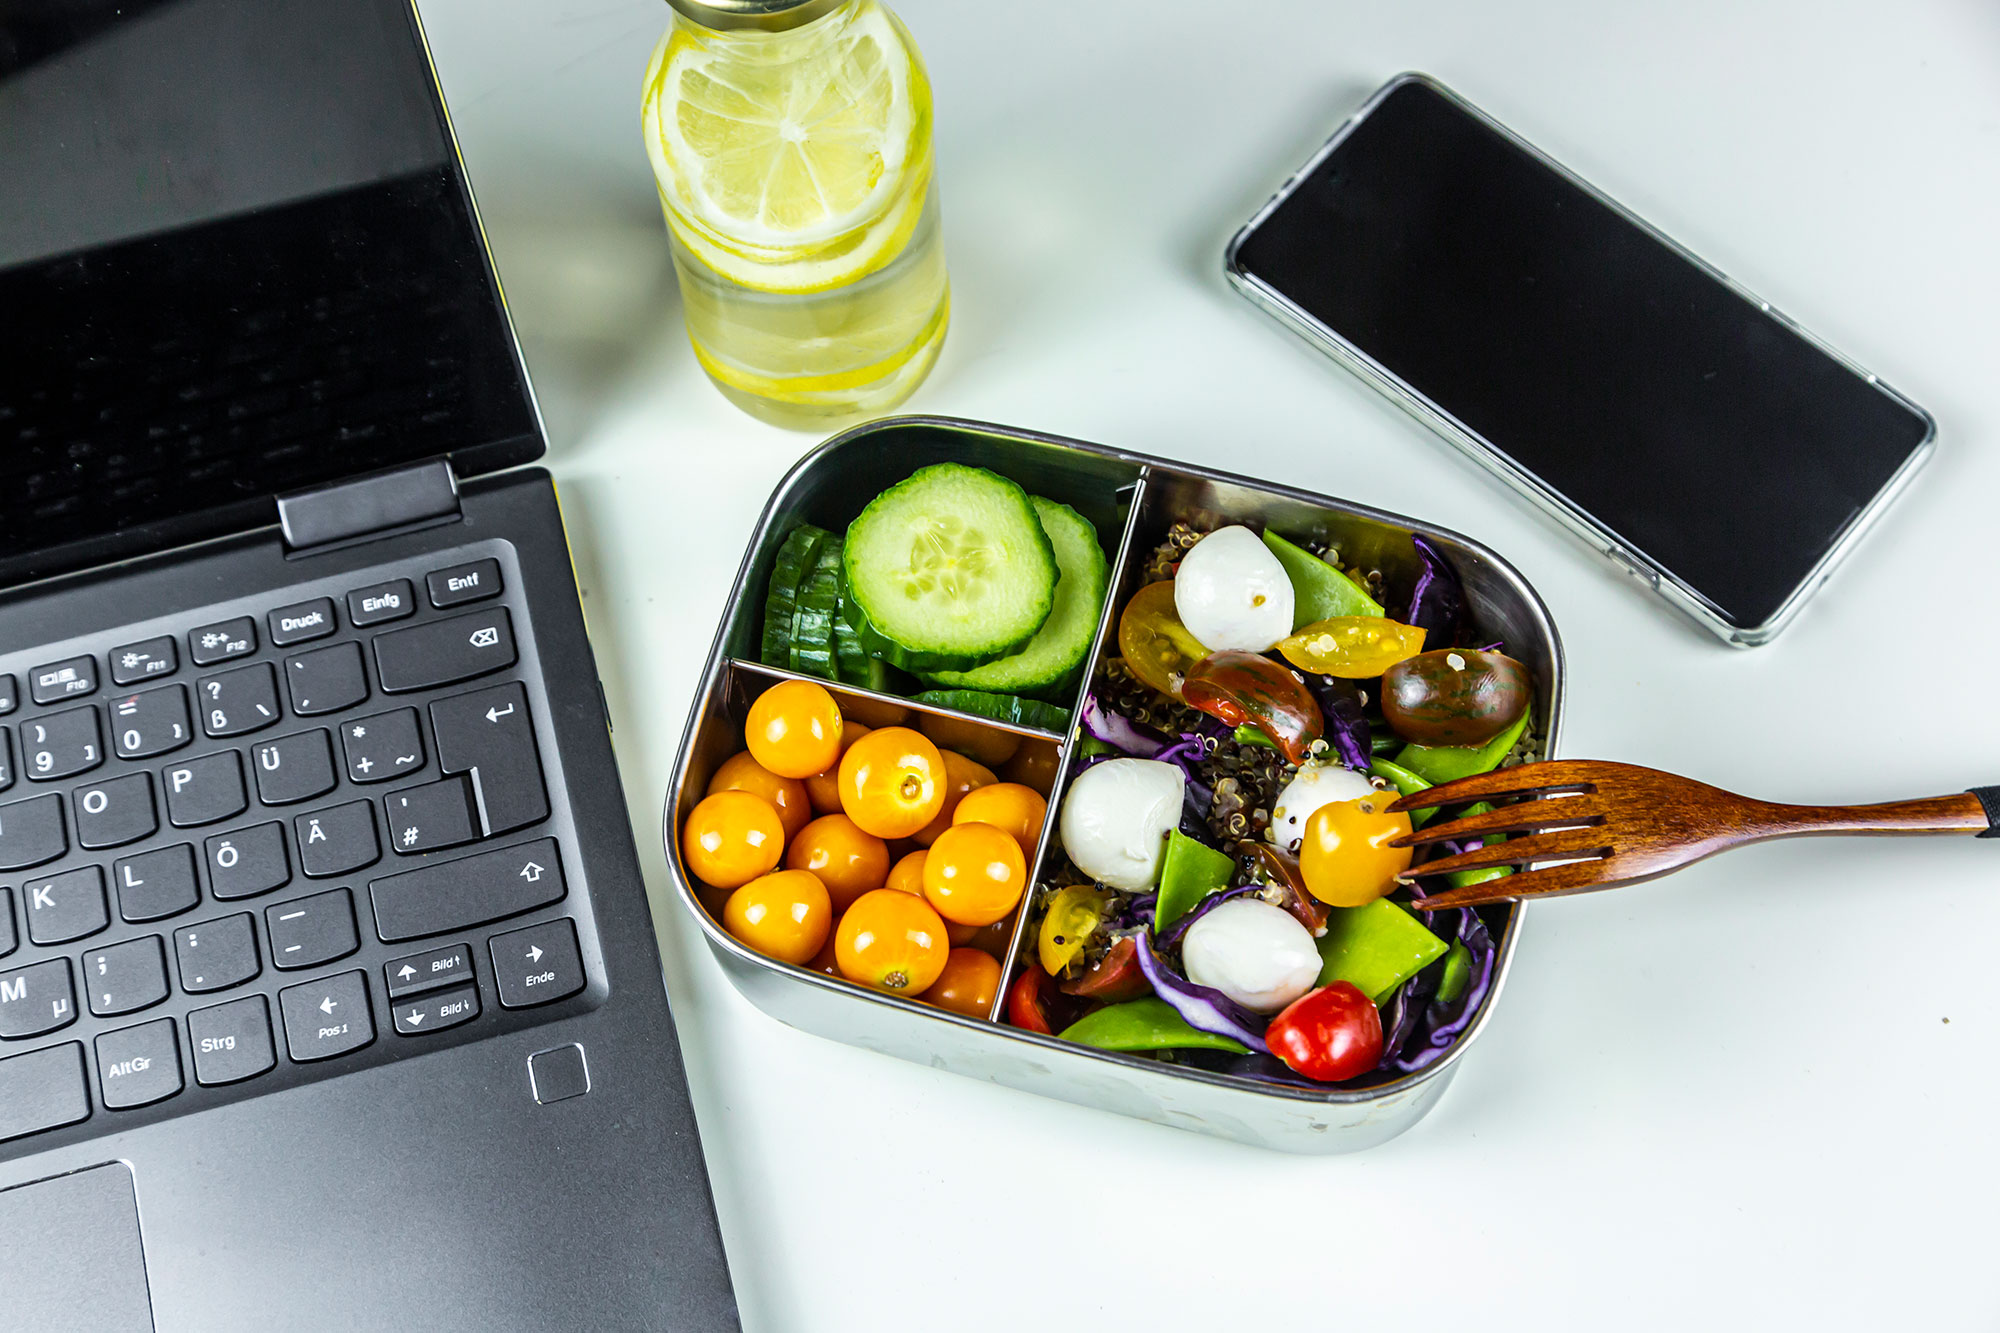 Laptop, smart phone, bottle of lemonade and lunchbox with cucumber slices, winter cherries and quinoa salad (quinoa, cherry tomato, red cabbage, sugar snap peas and mozzarella balls)